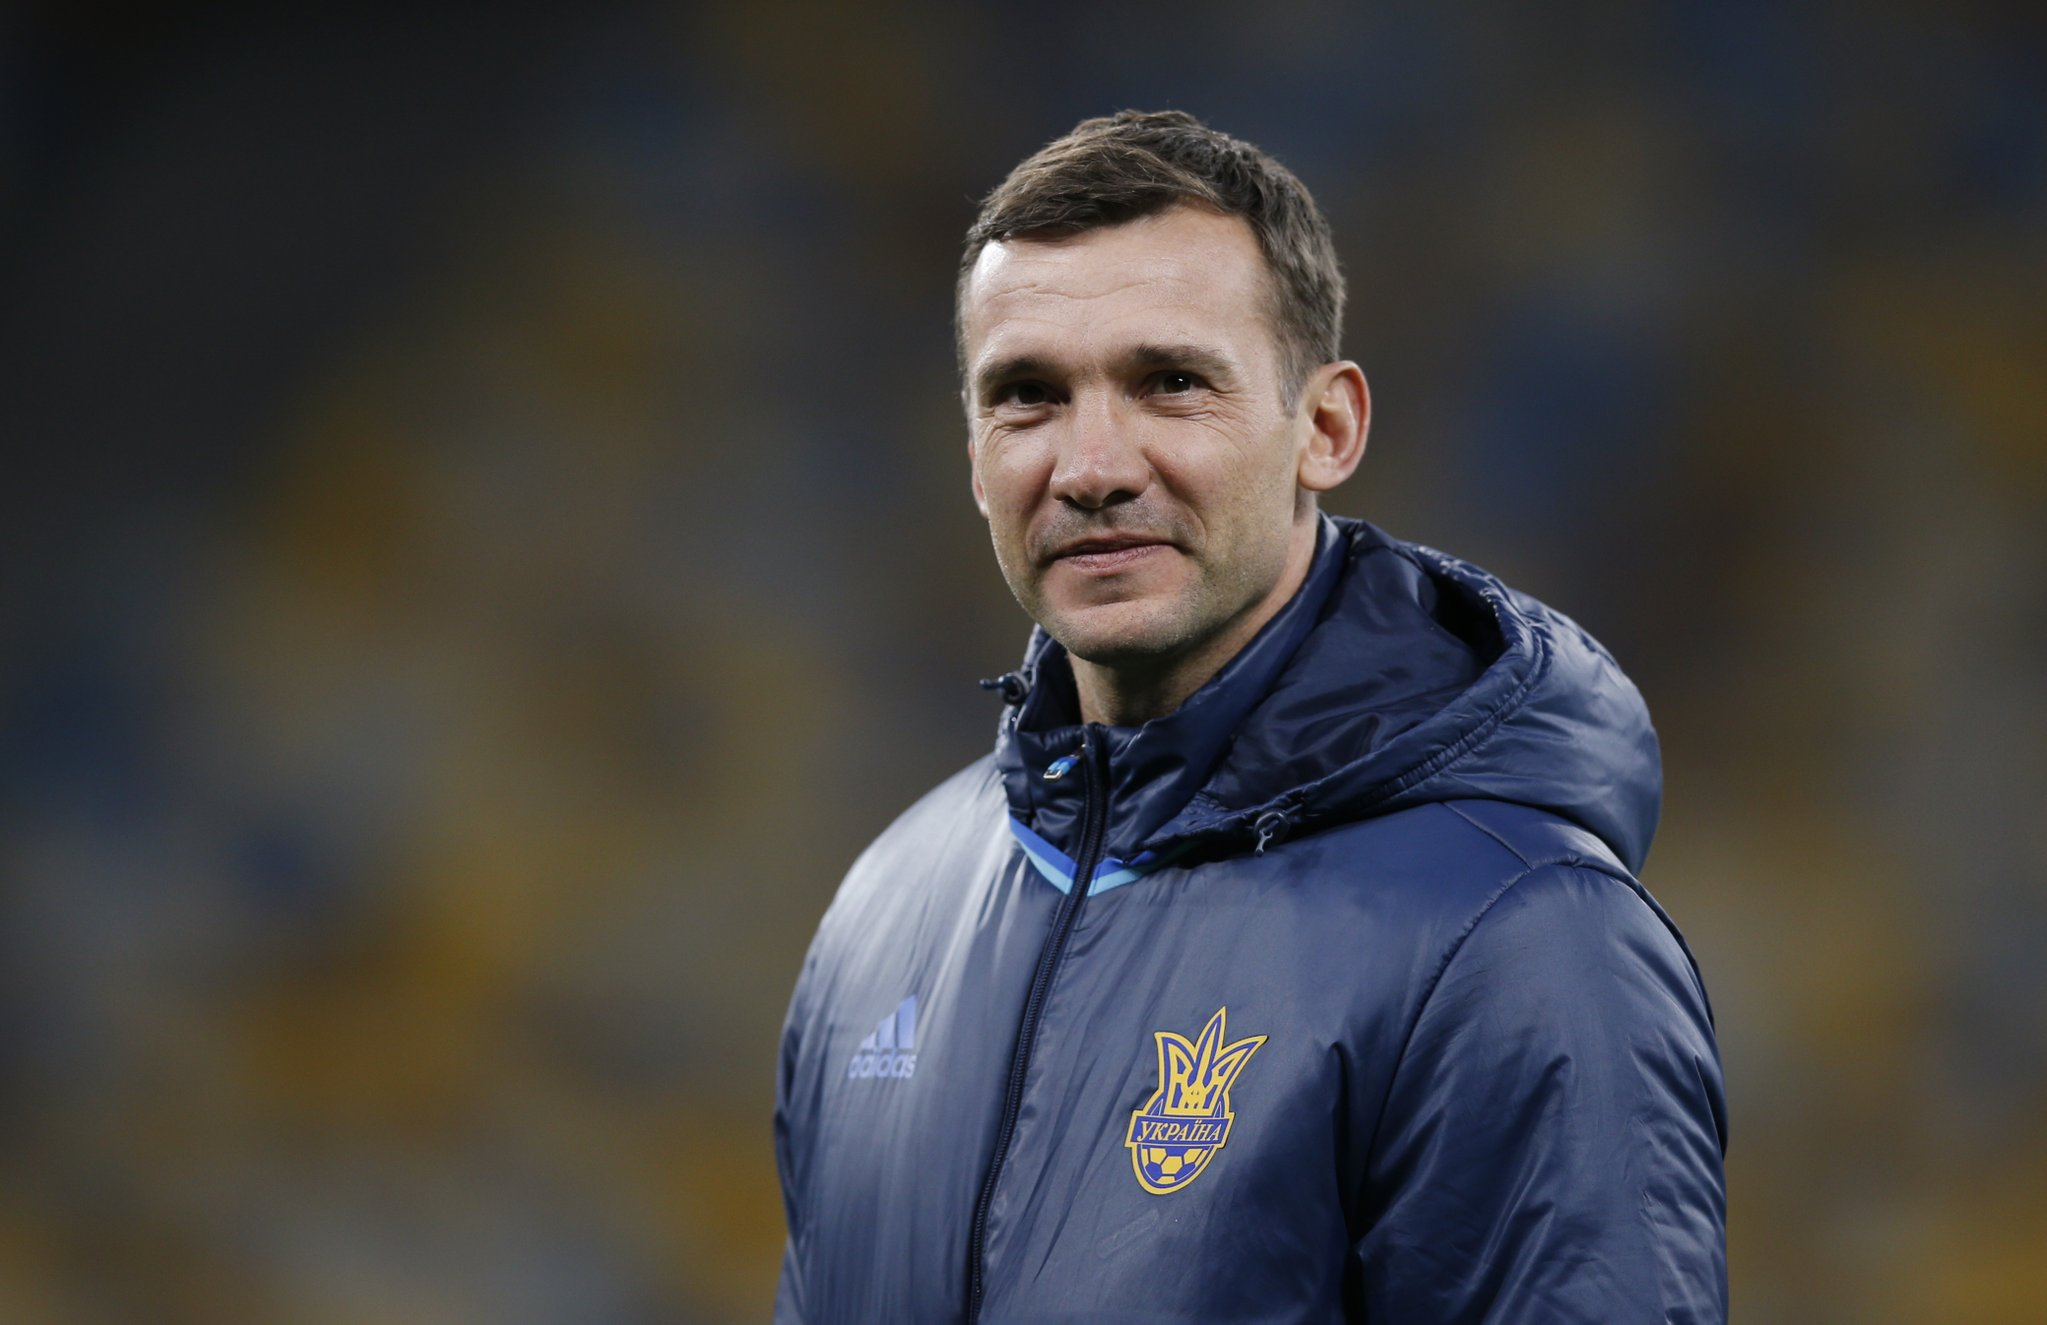 Ex-Chelsea Striker Shevchenko Named Ukraine Coach